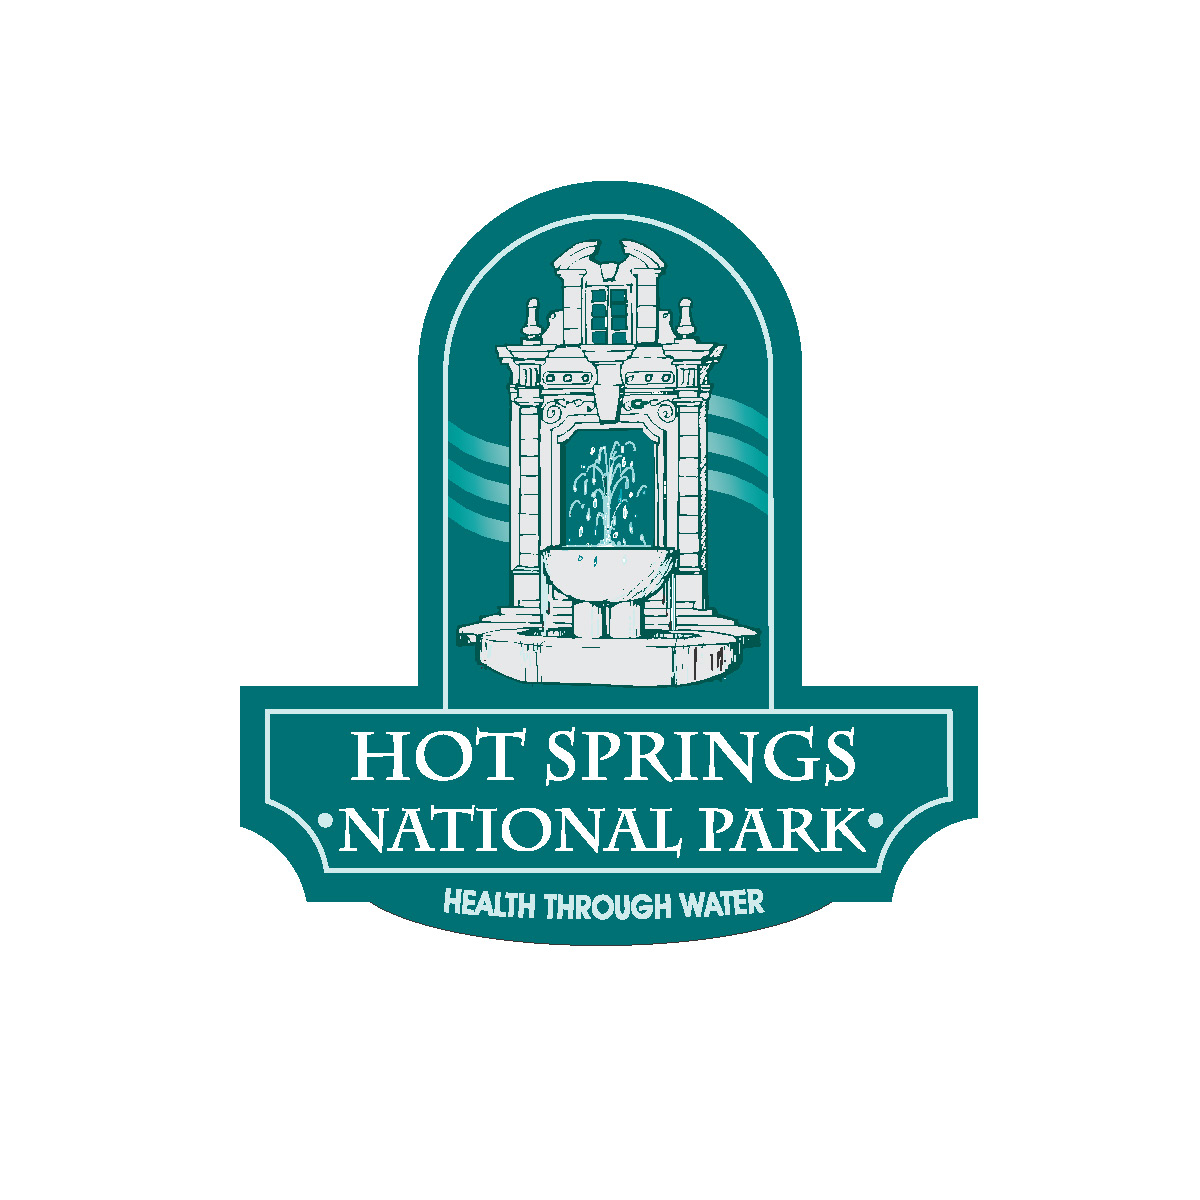 Hot Springs National Park - Health Through Water